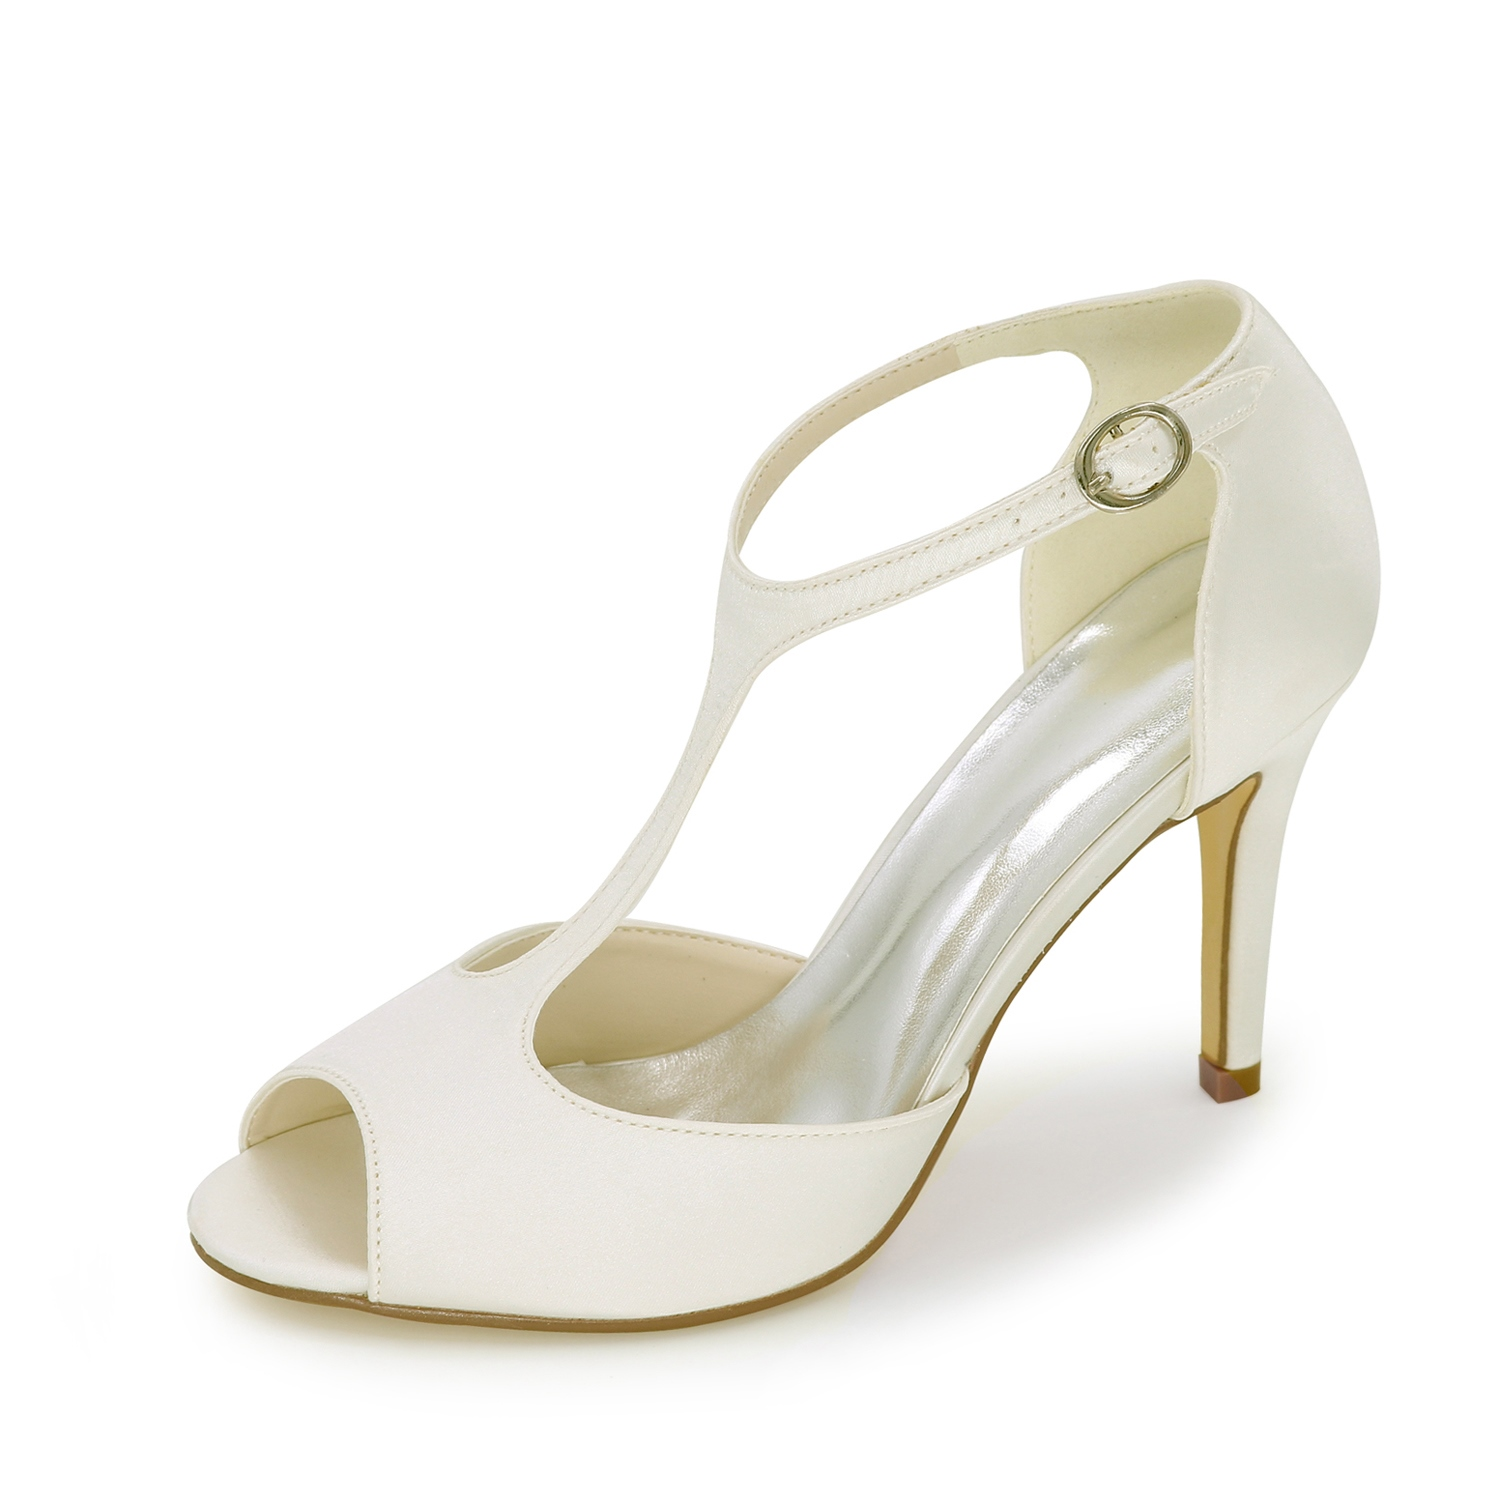 Ericdress Elegant T Strap Peep Toe Wedding Shoes 12220443